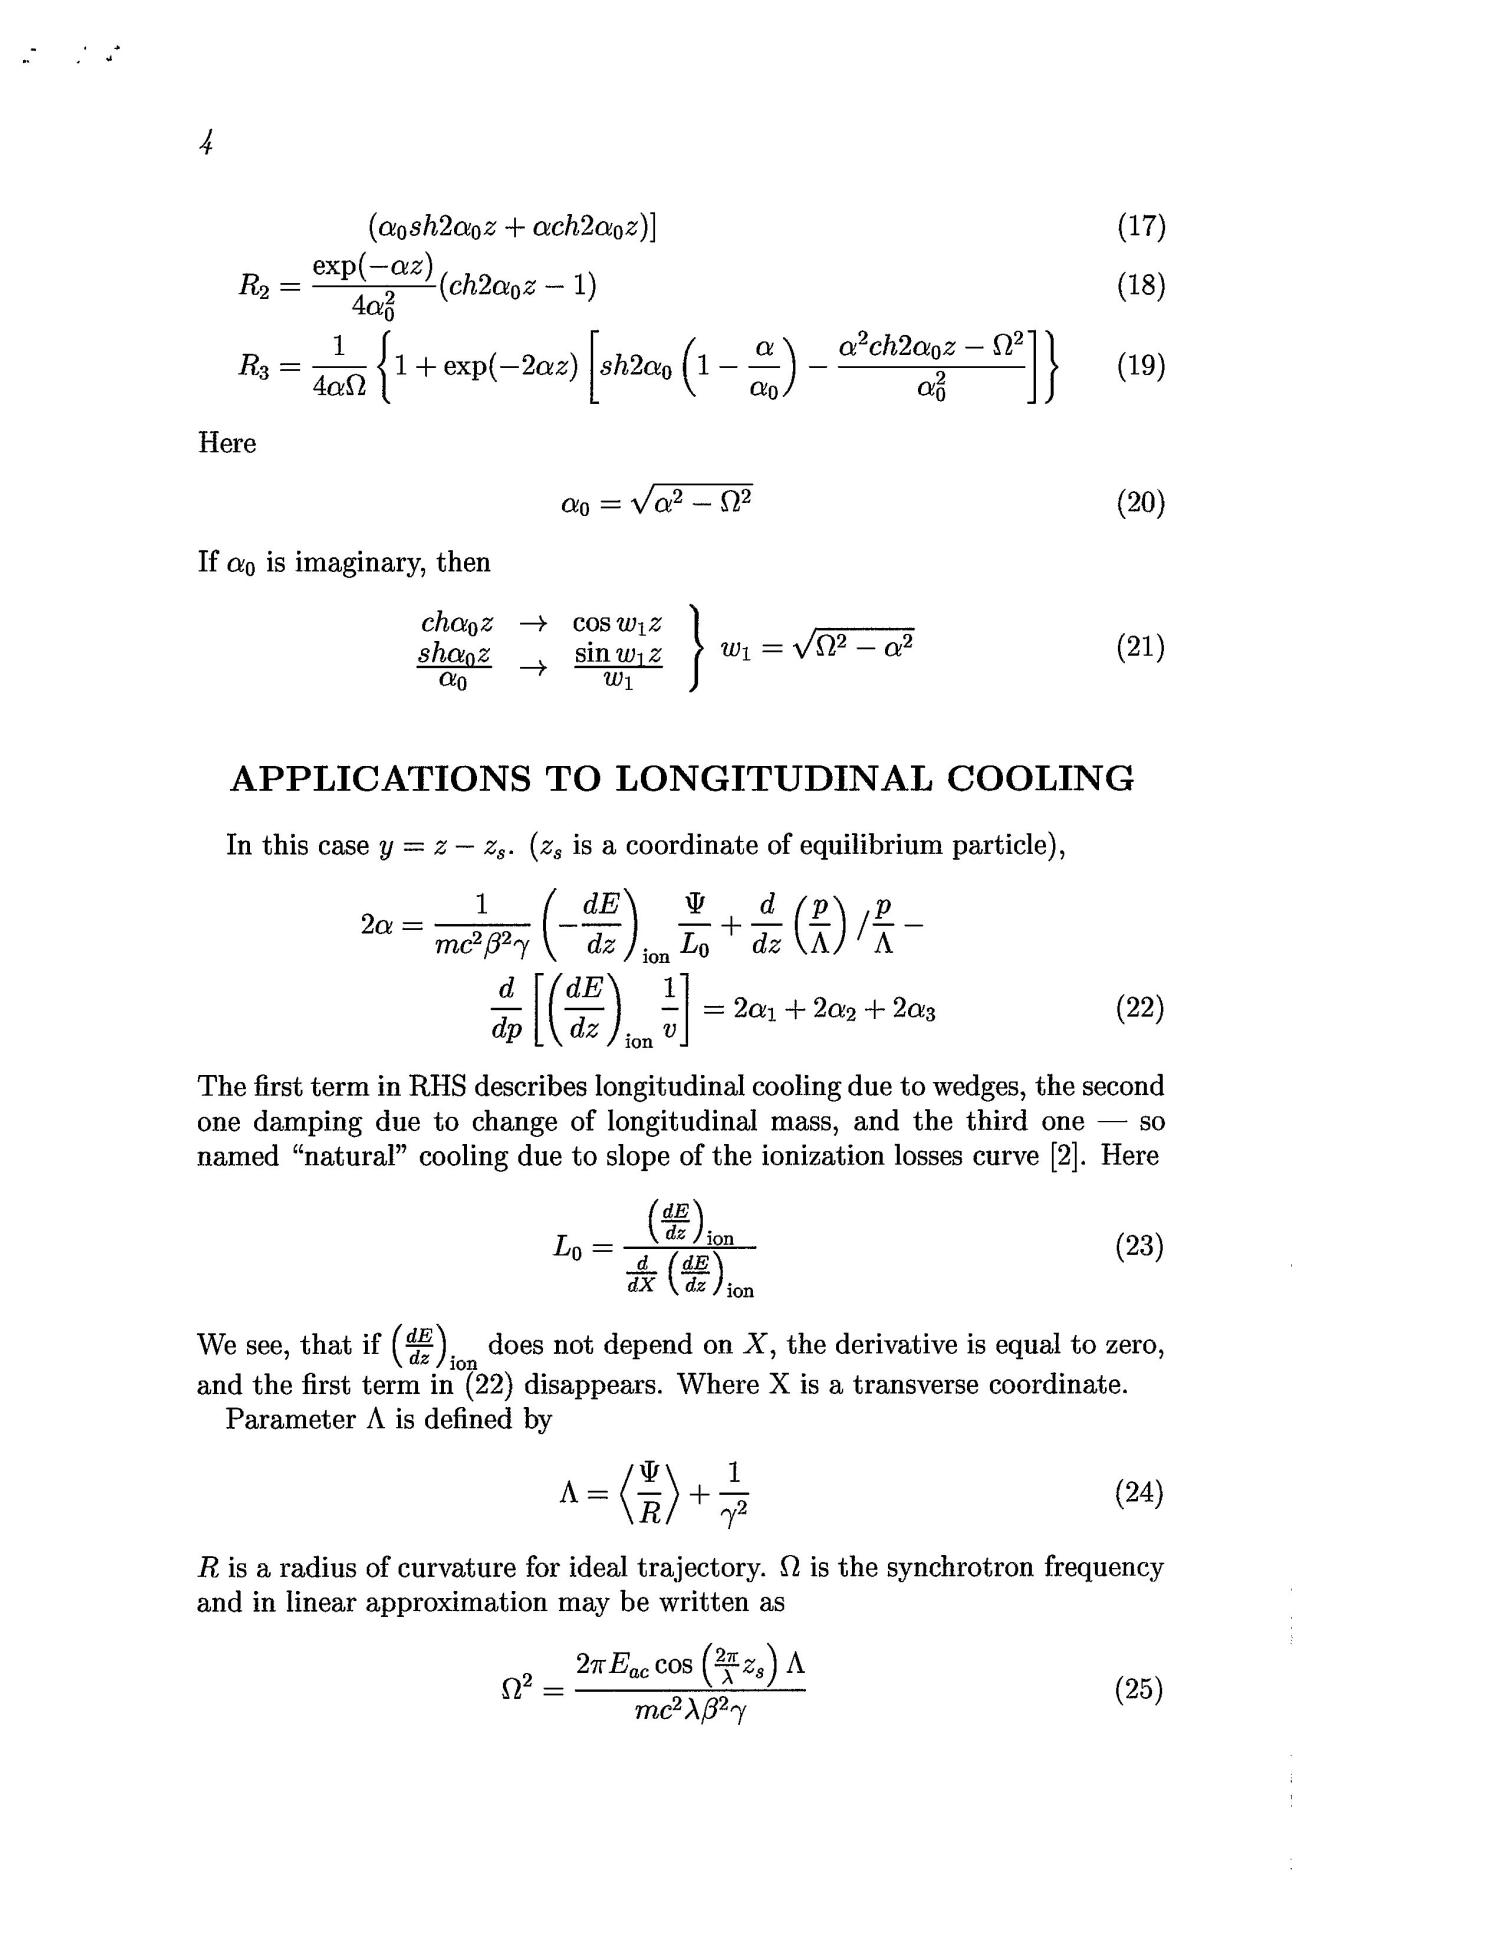 APPLICATION OF MOMENTS METHOD TO DYNAMICS OF MUON COOLING SYSTEM.                                                                                                      [Sequence #]: 4 of 6